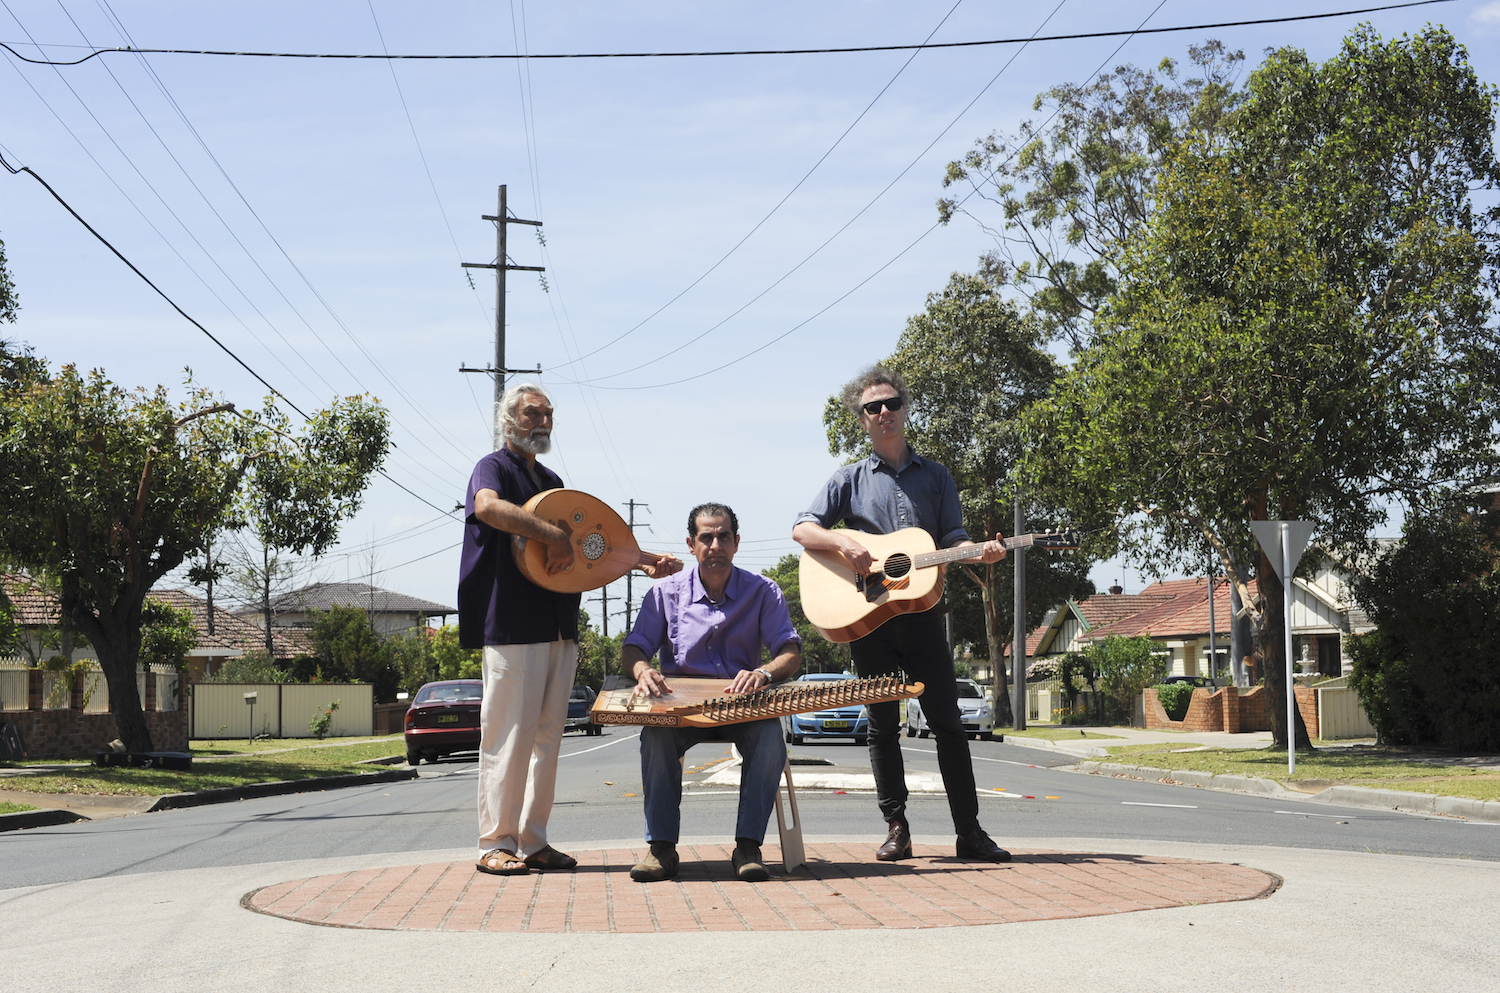 Songs from Northam Avenue